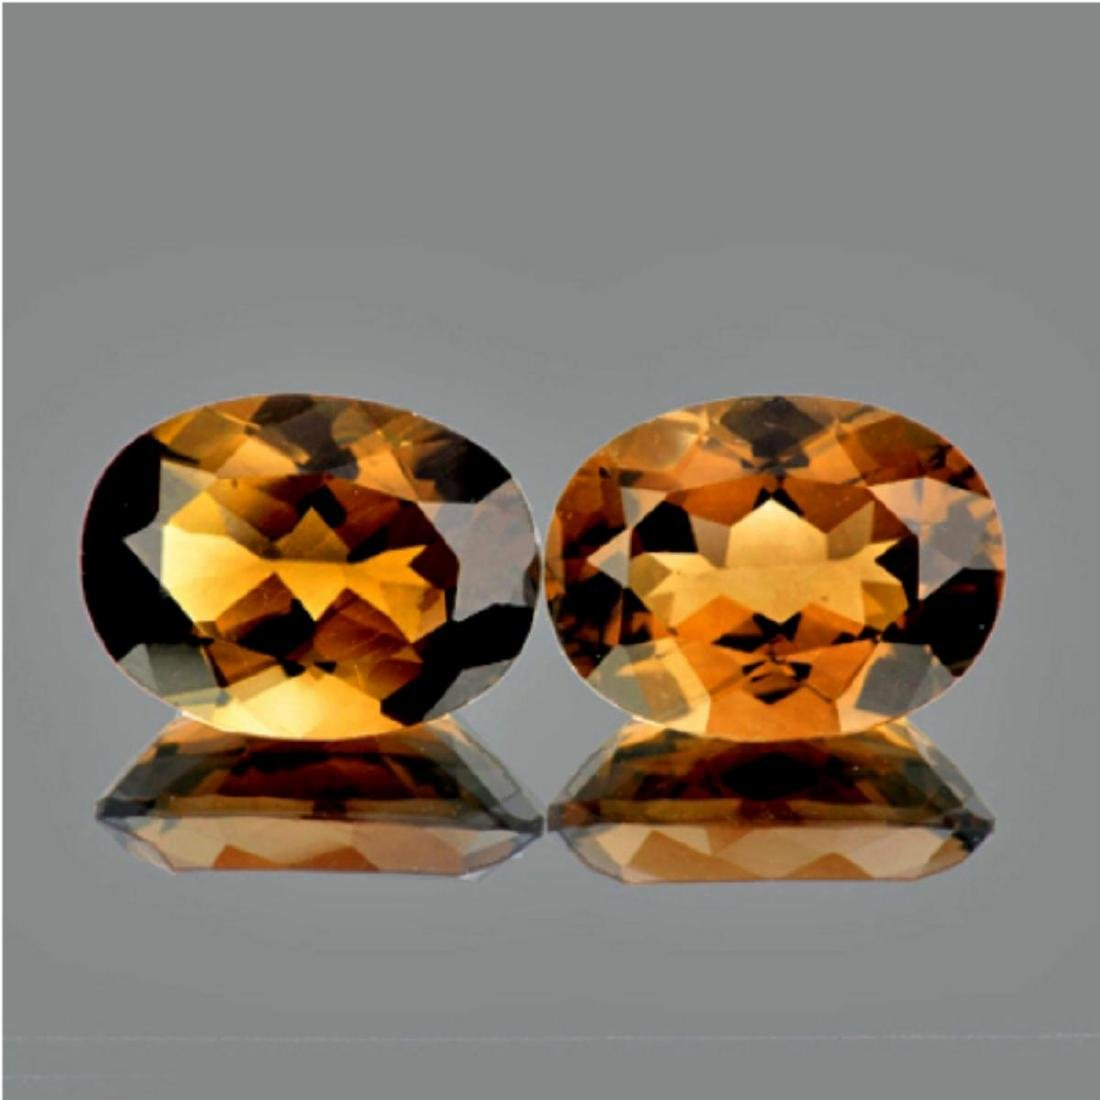 Natural Smoky Topaz Pair 15.10 (16 x 12 MM) Ct - VVS